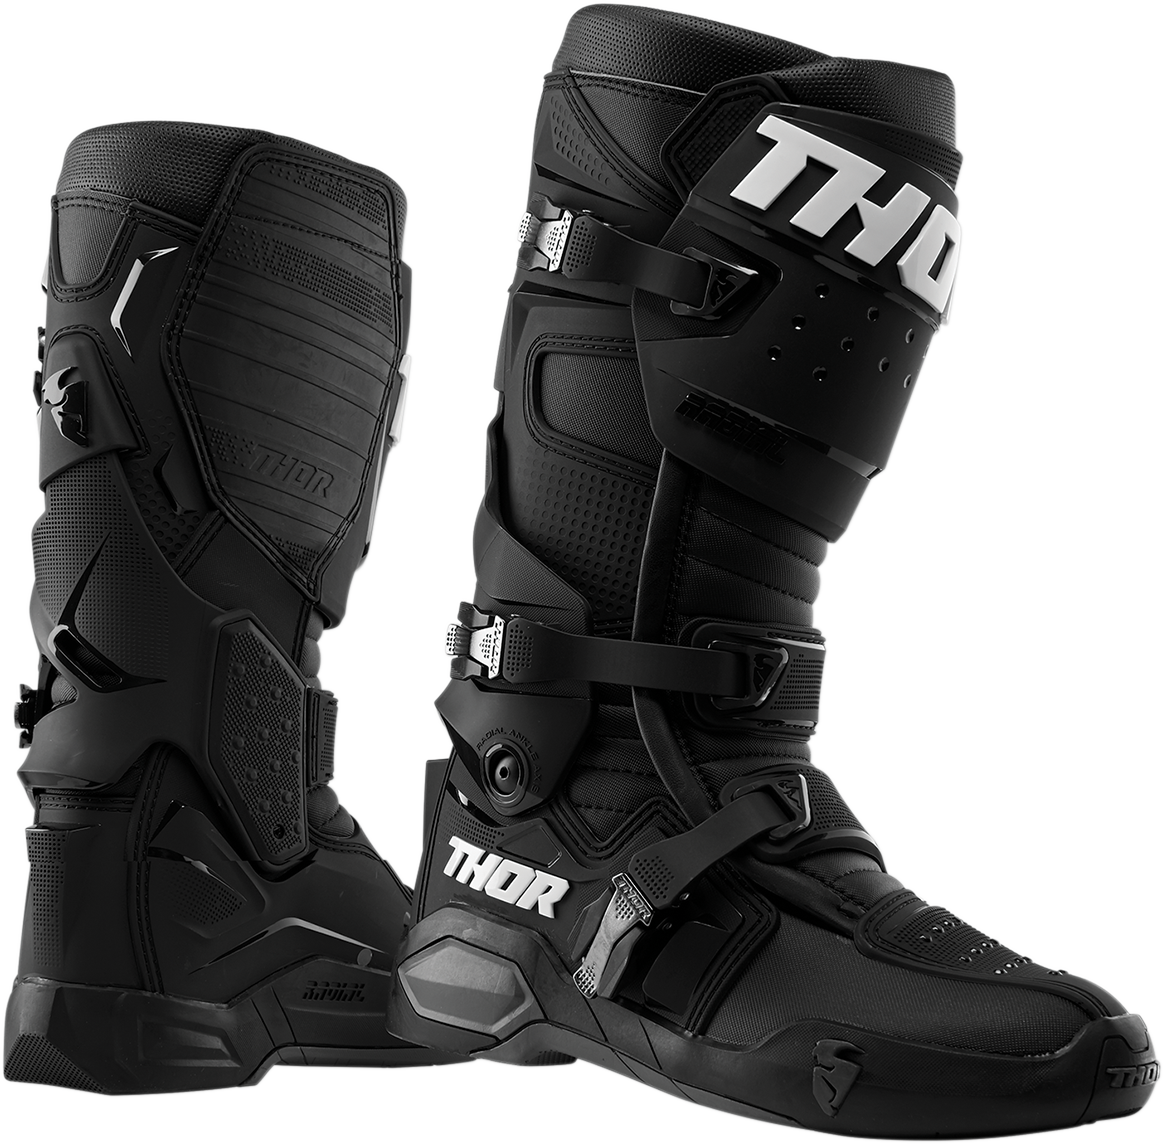 Thor Mens Pair Radial Off road Riding Dirt Bike Motocross MX Racing Boots